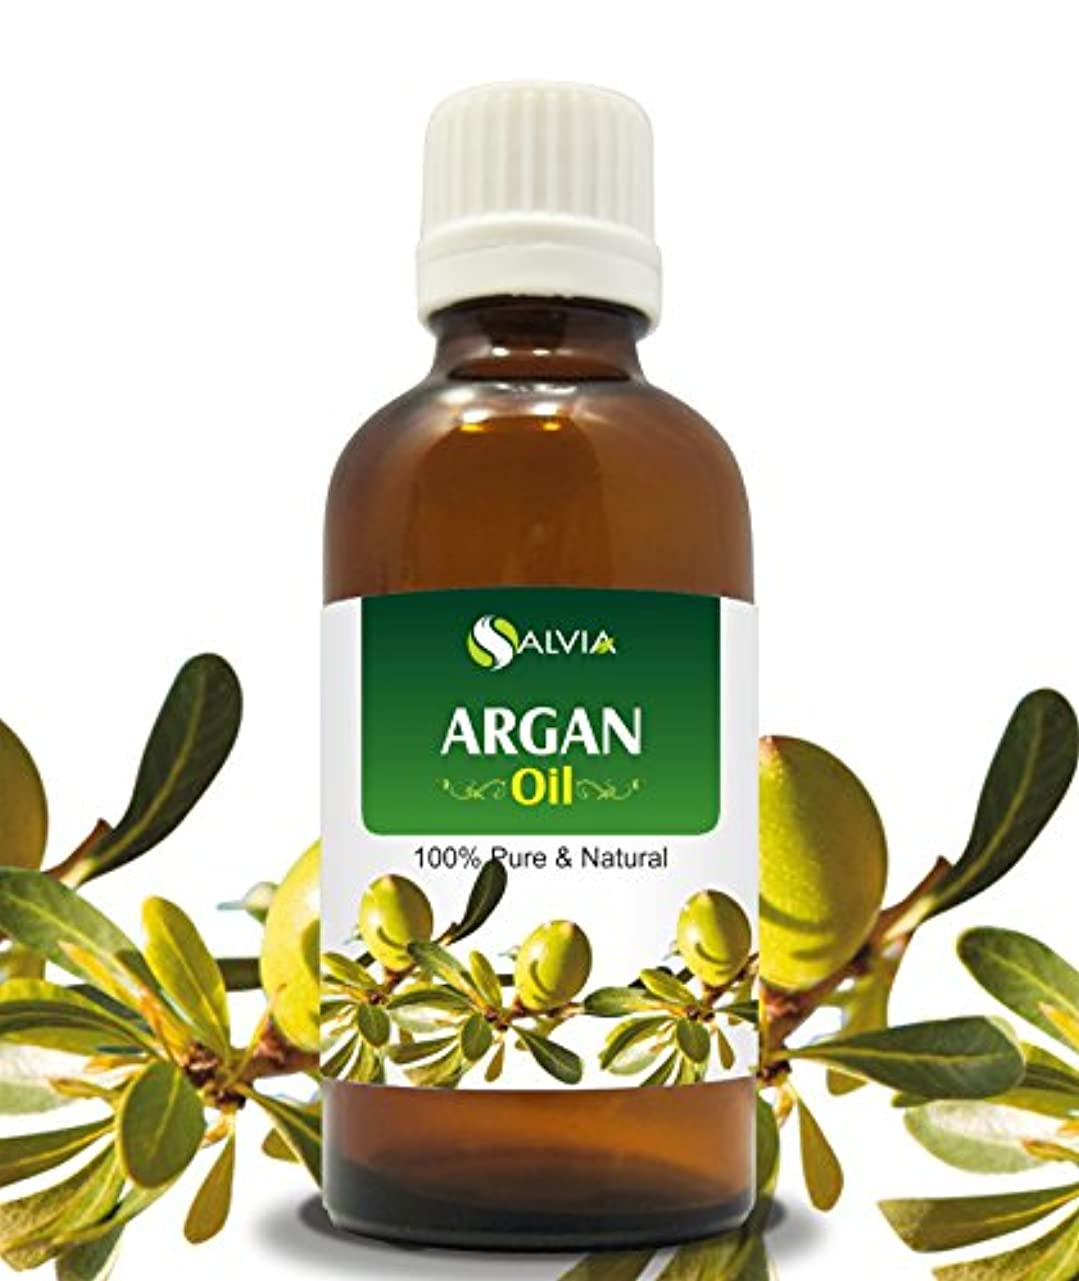 ARGAN OIL 100% NATURAL PURE UNDILUTED UNCUT OILS 15ML